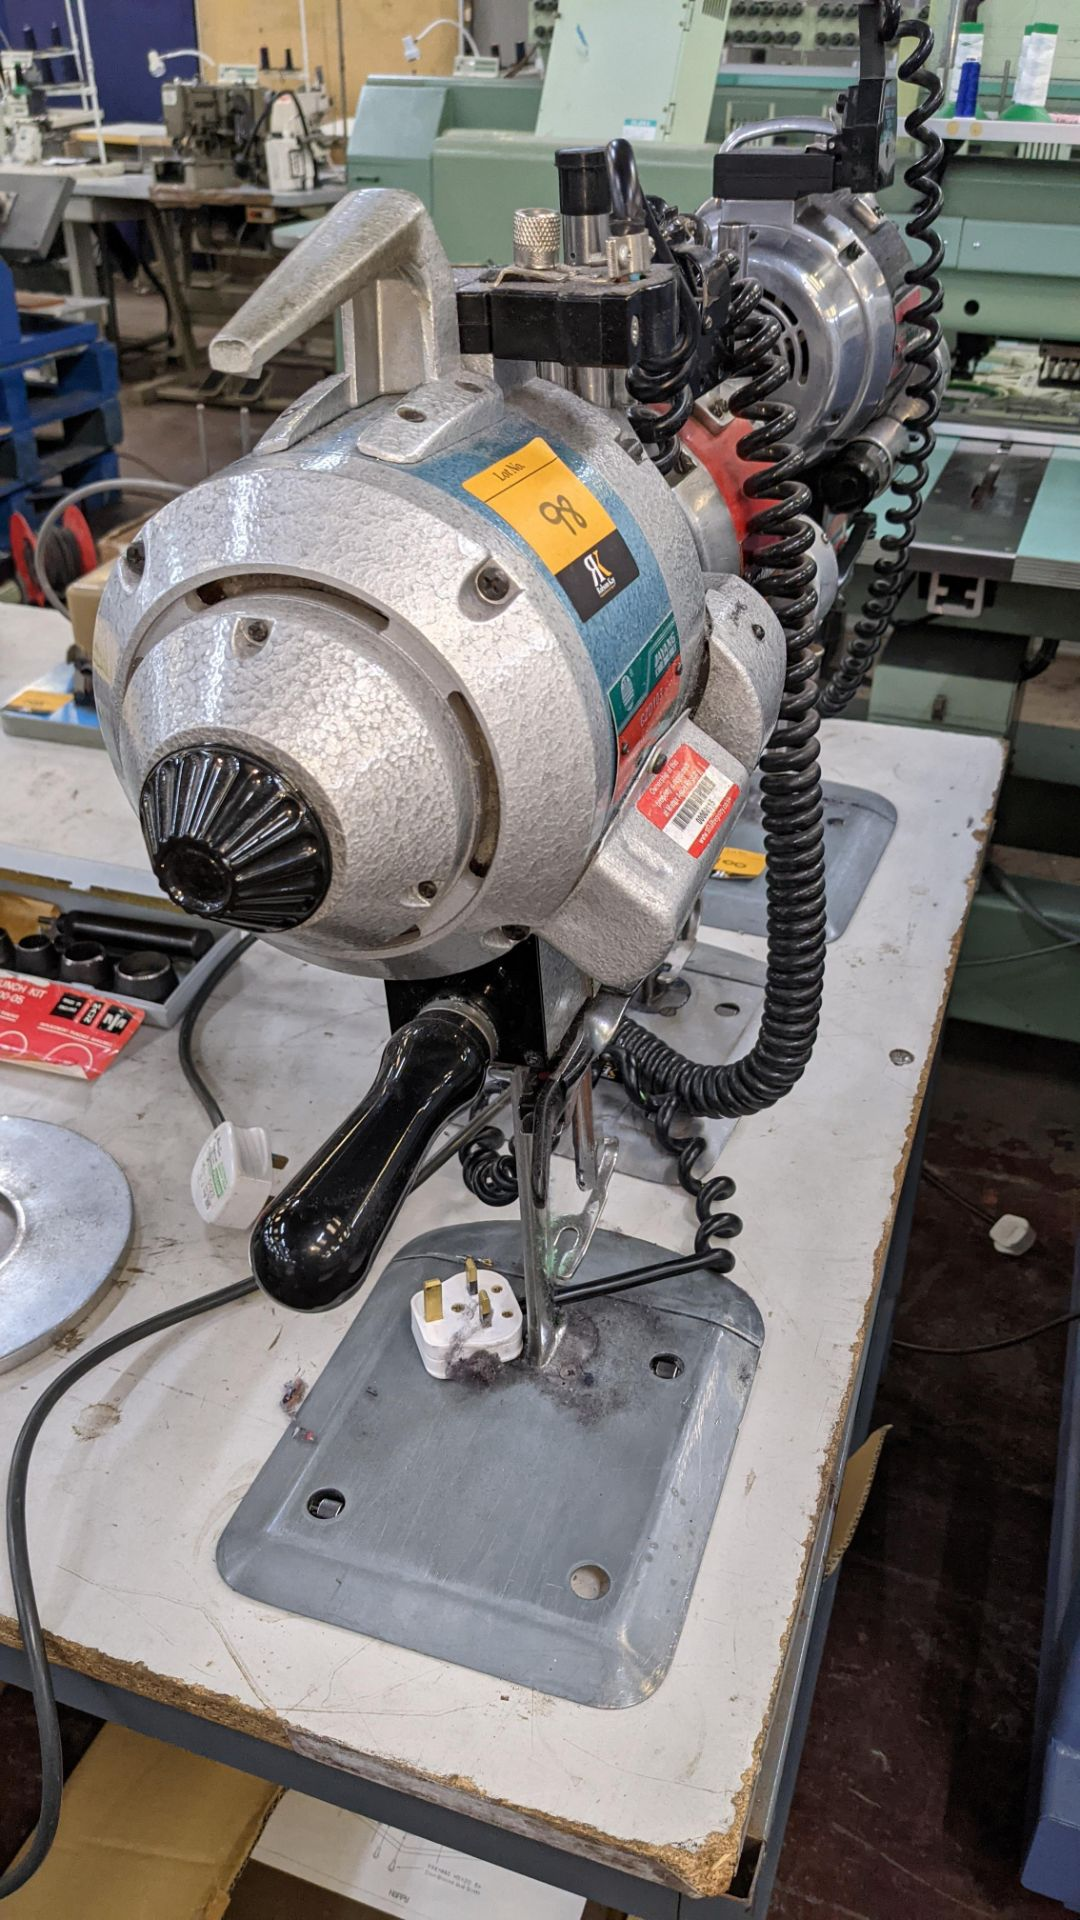 Ayang model CZD103 electric cutter - Image 3 of 6